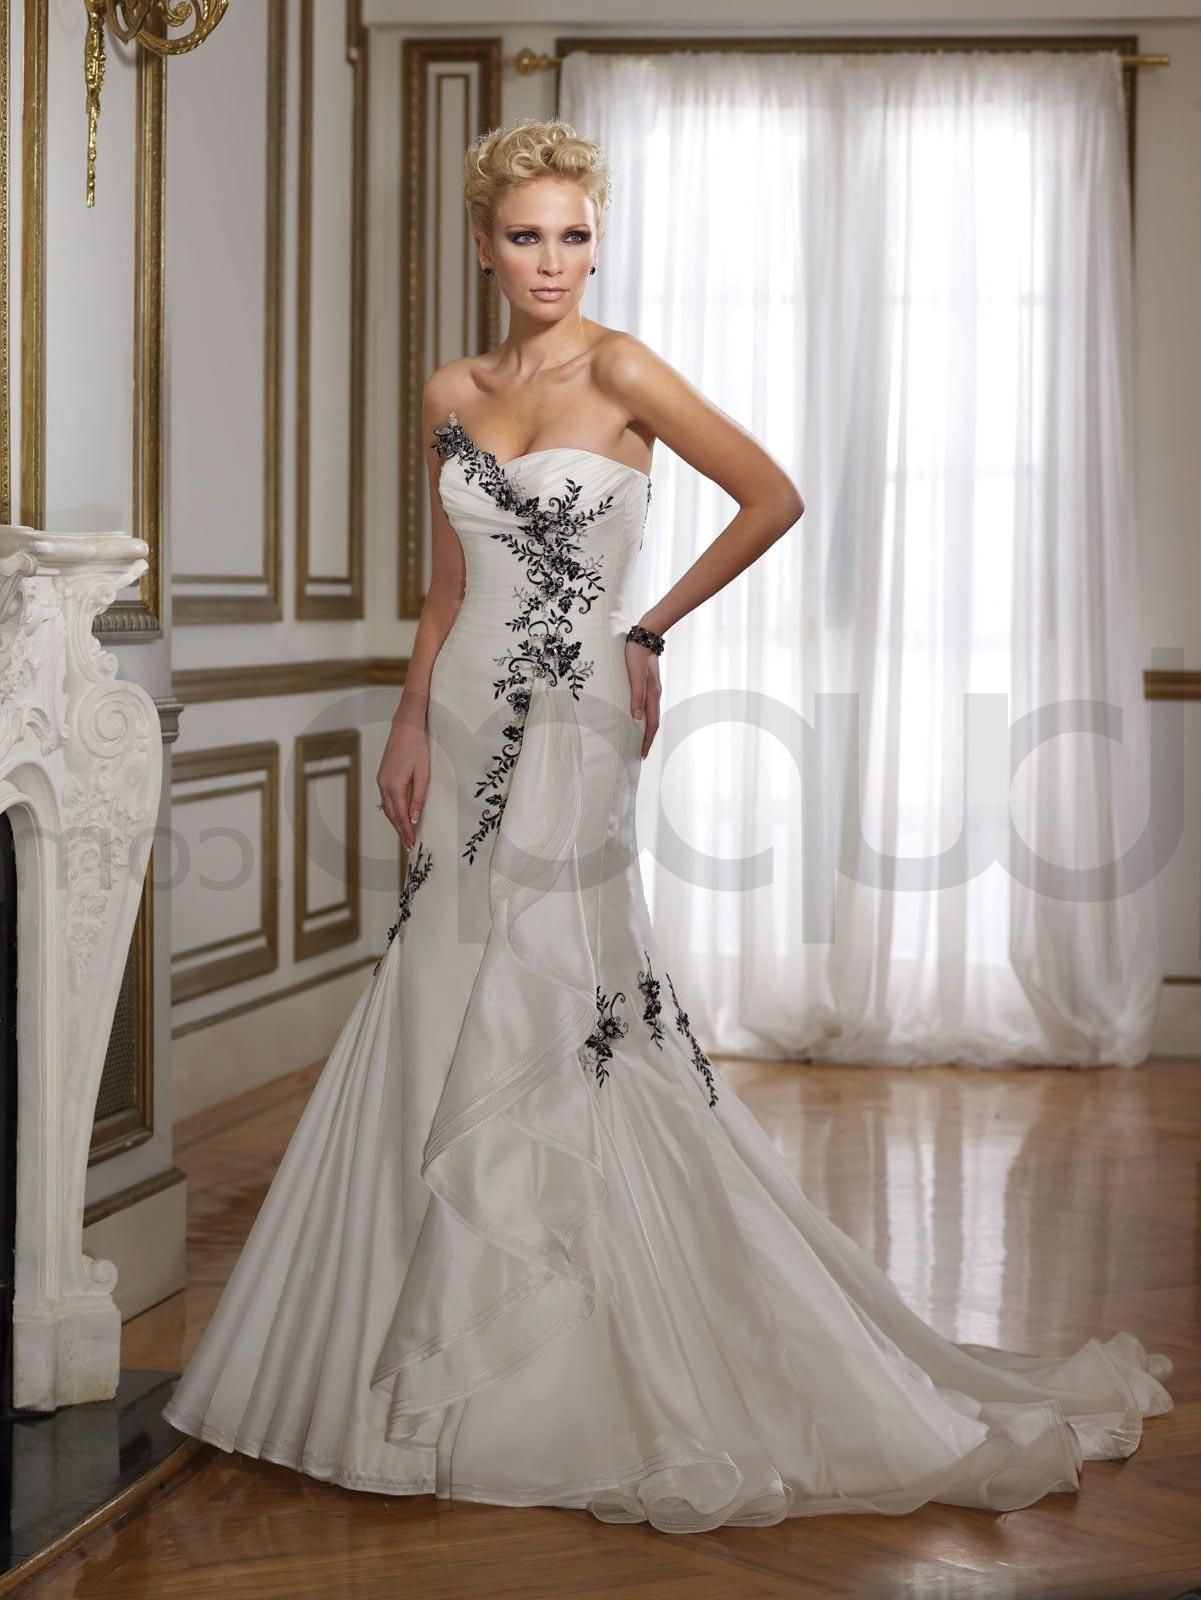 wedding dresses sweetheart neckline 83 wedding dresses mermaid style wedding dresses sweetheart neckline mermaid style with bling mermaid sweetheart neckline